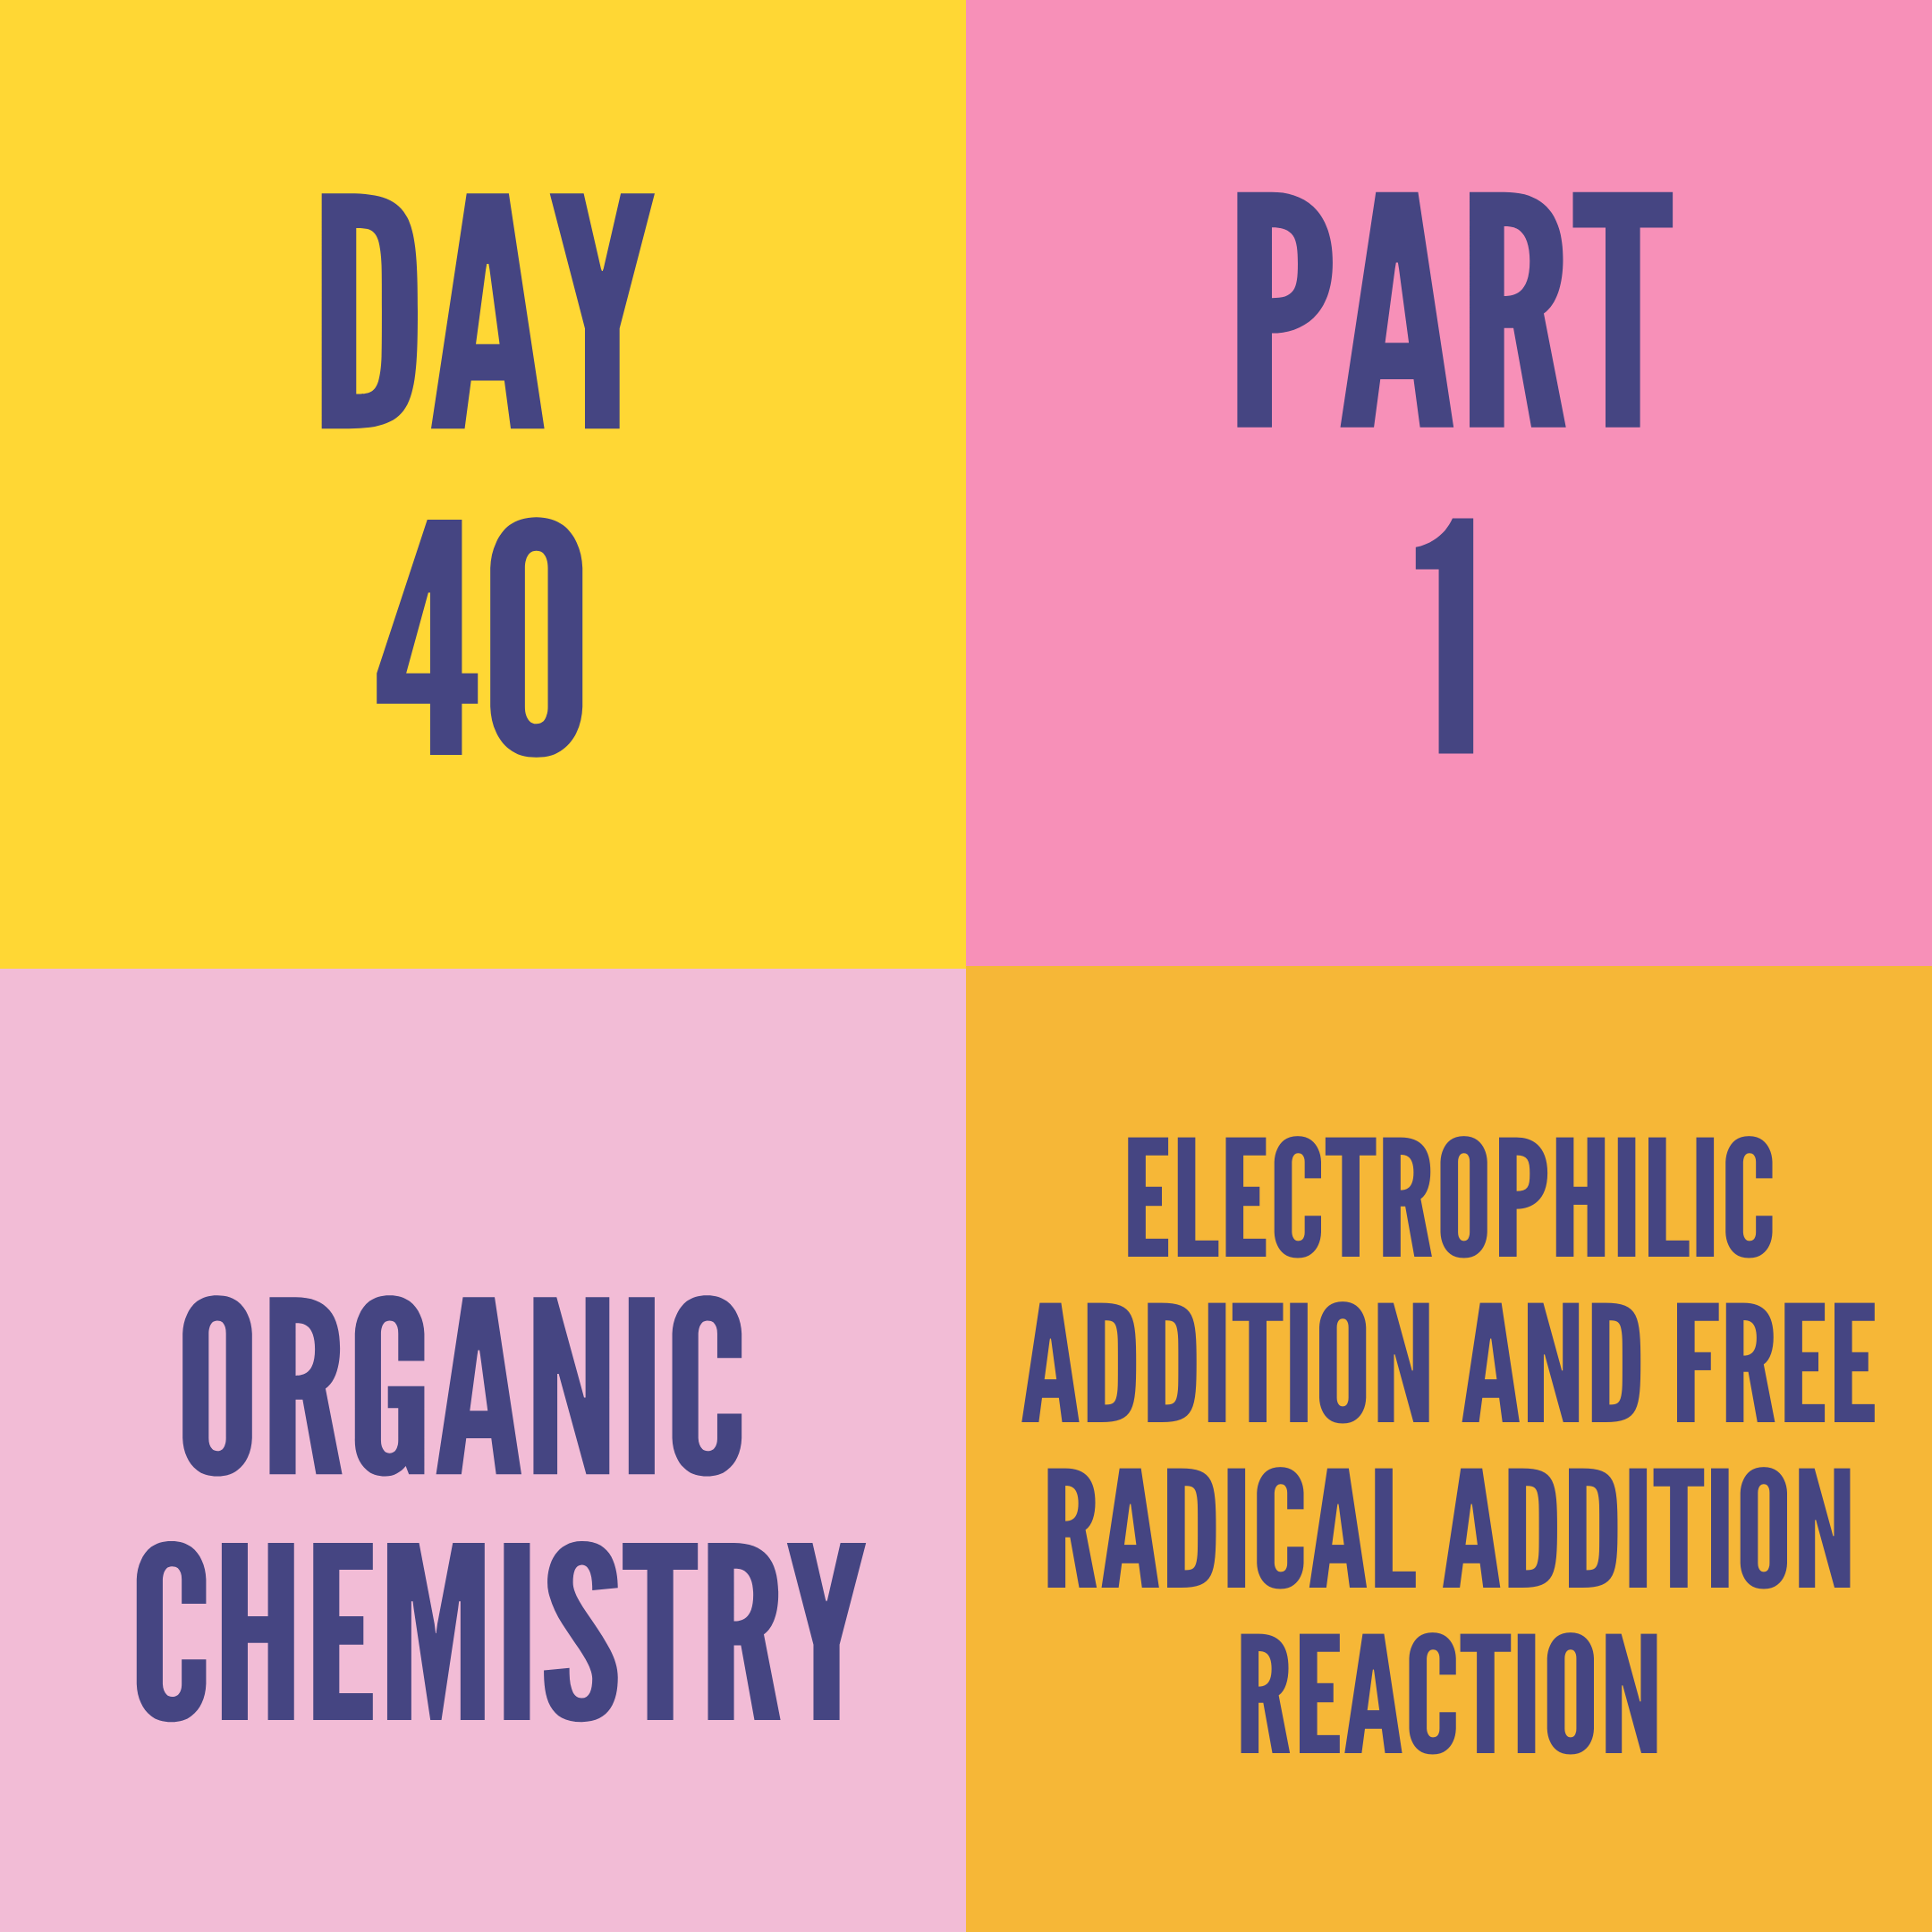 DAY-40 PART-1 ELECTROPHILIC ADDITION AND FREE RADICAL ADDITION REACTION